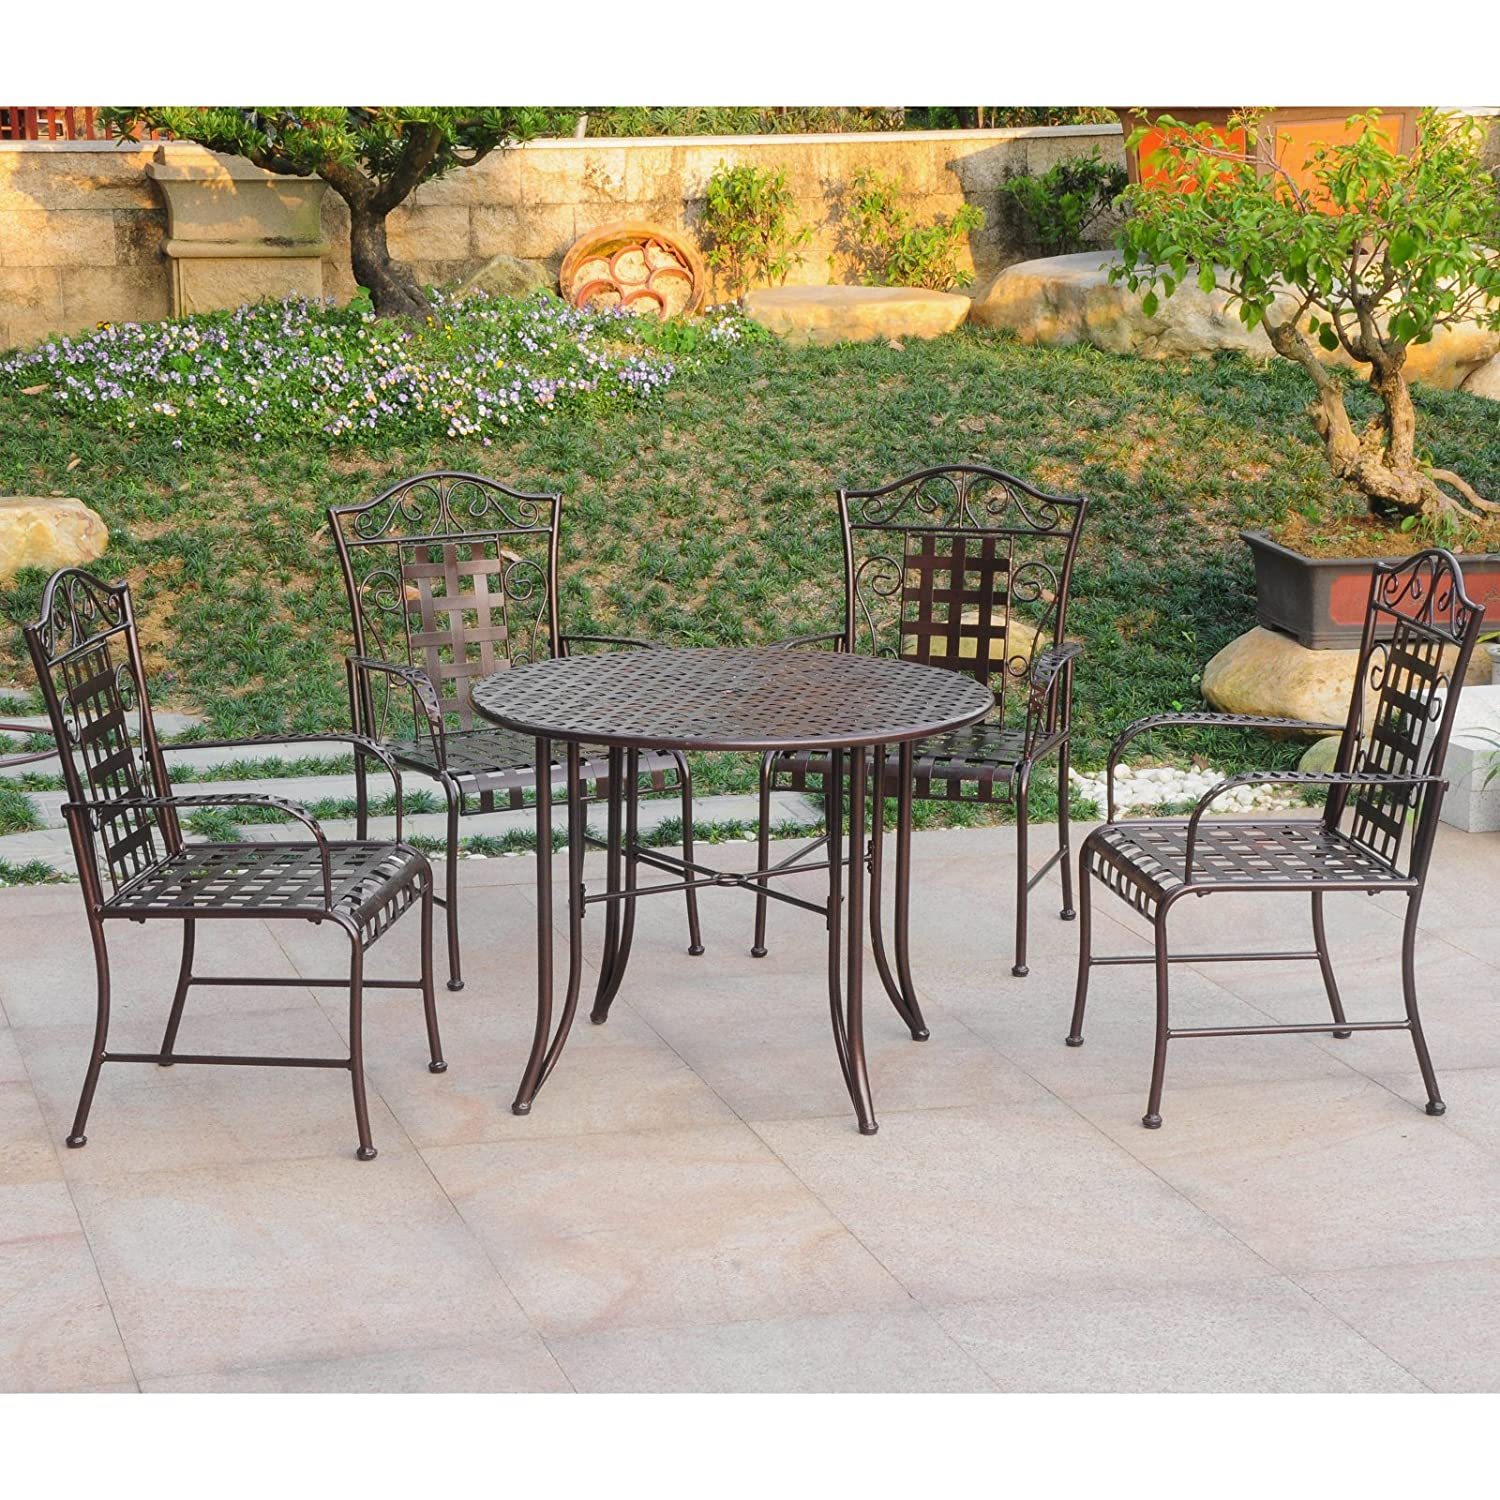 Elegant Wrought Iron Patio Chairs